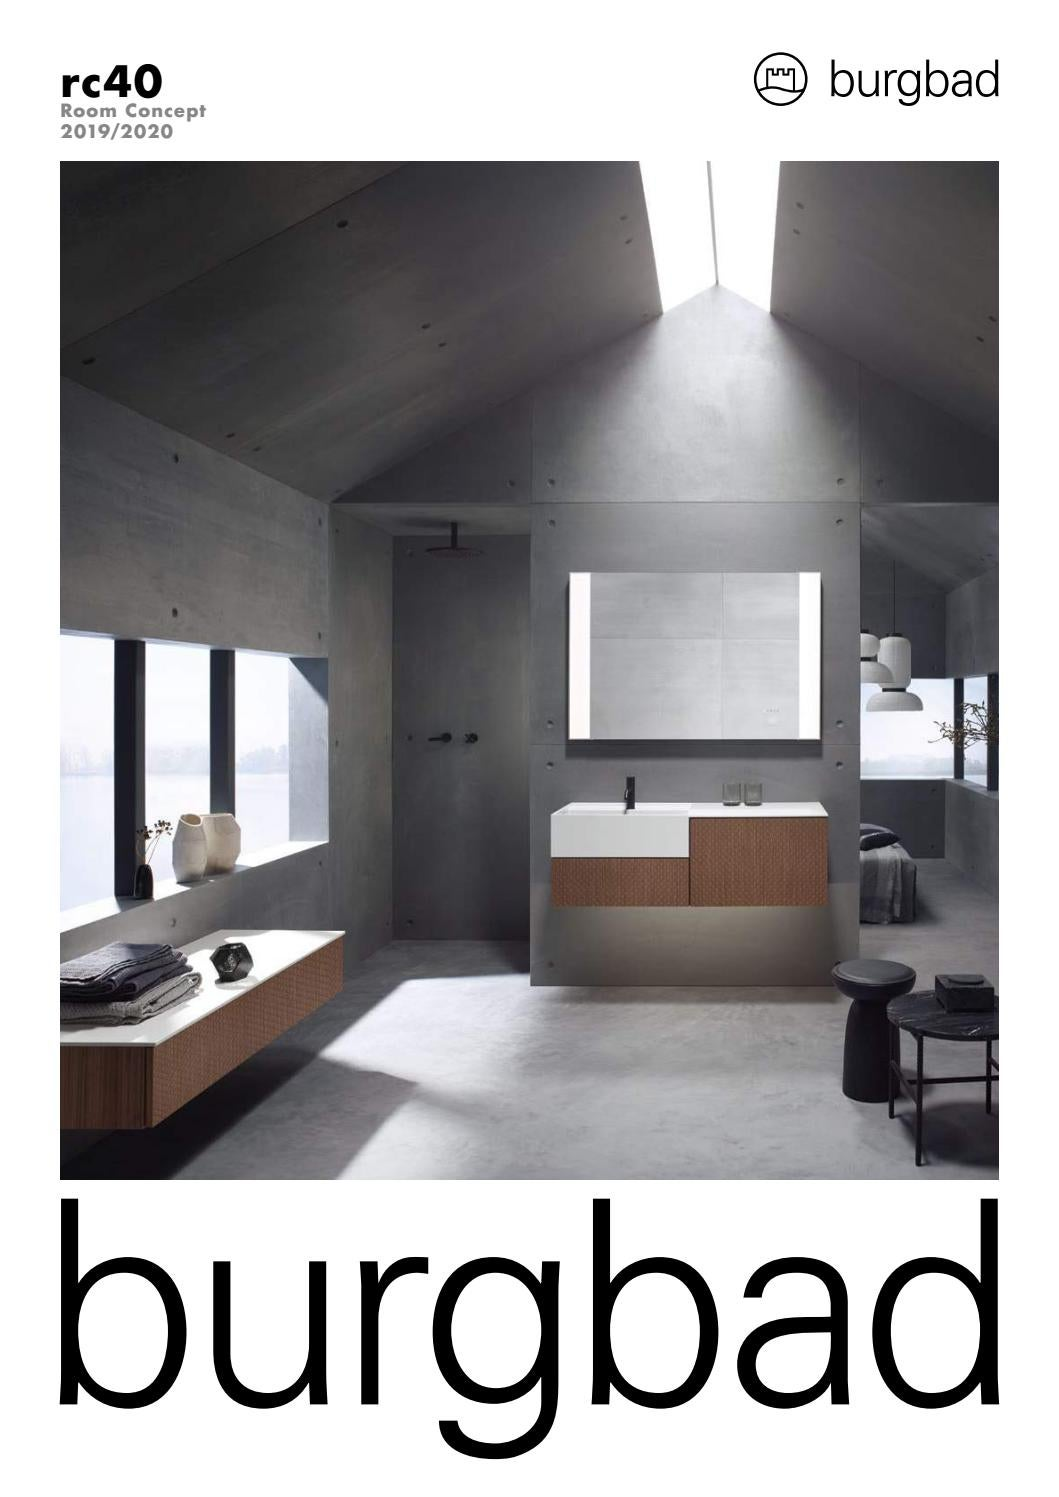 Burgbad Rc40 Room Concept 2019 2020 By Sanilux Issuu